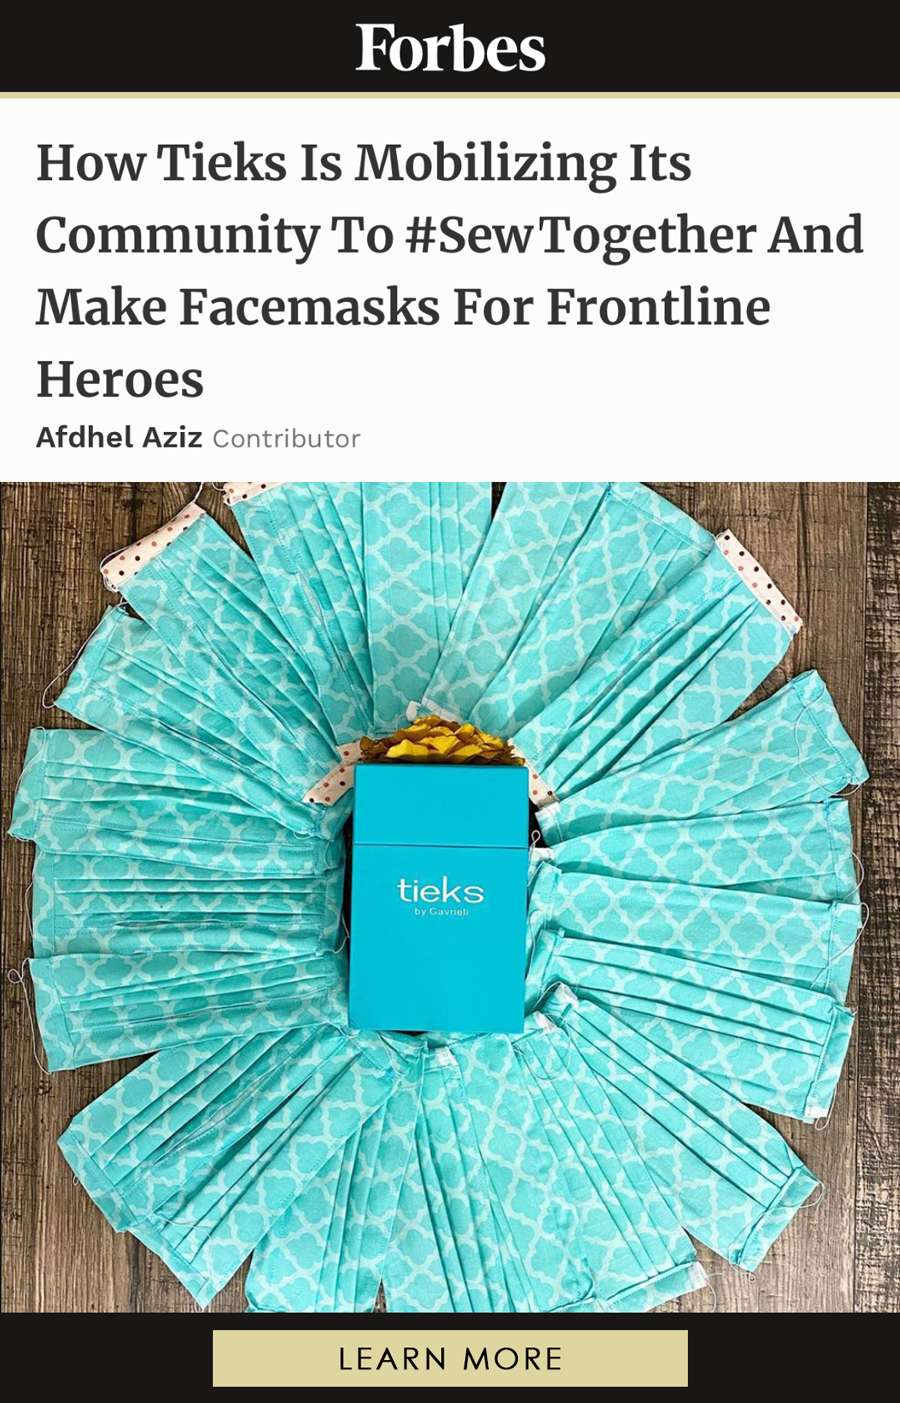 How Tieks Is Mobilizing Its Community To #SewTogether And Make Facemasks For Frontline Heroes